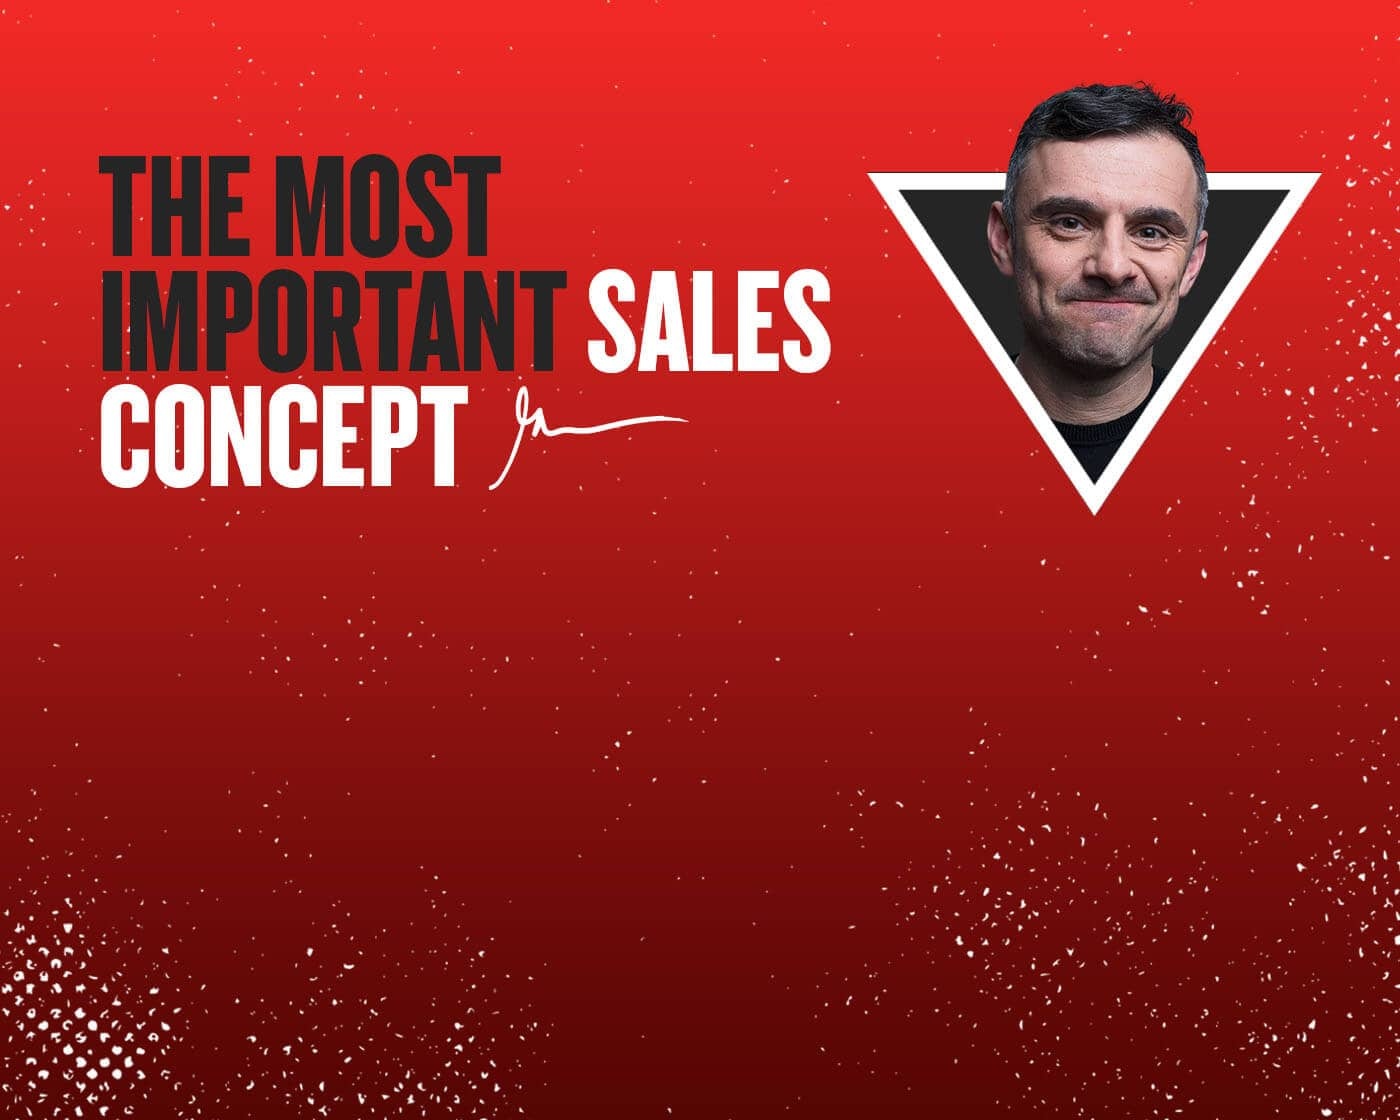 The Most Important Concept for Sales Success in 2019